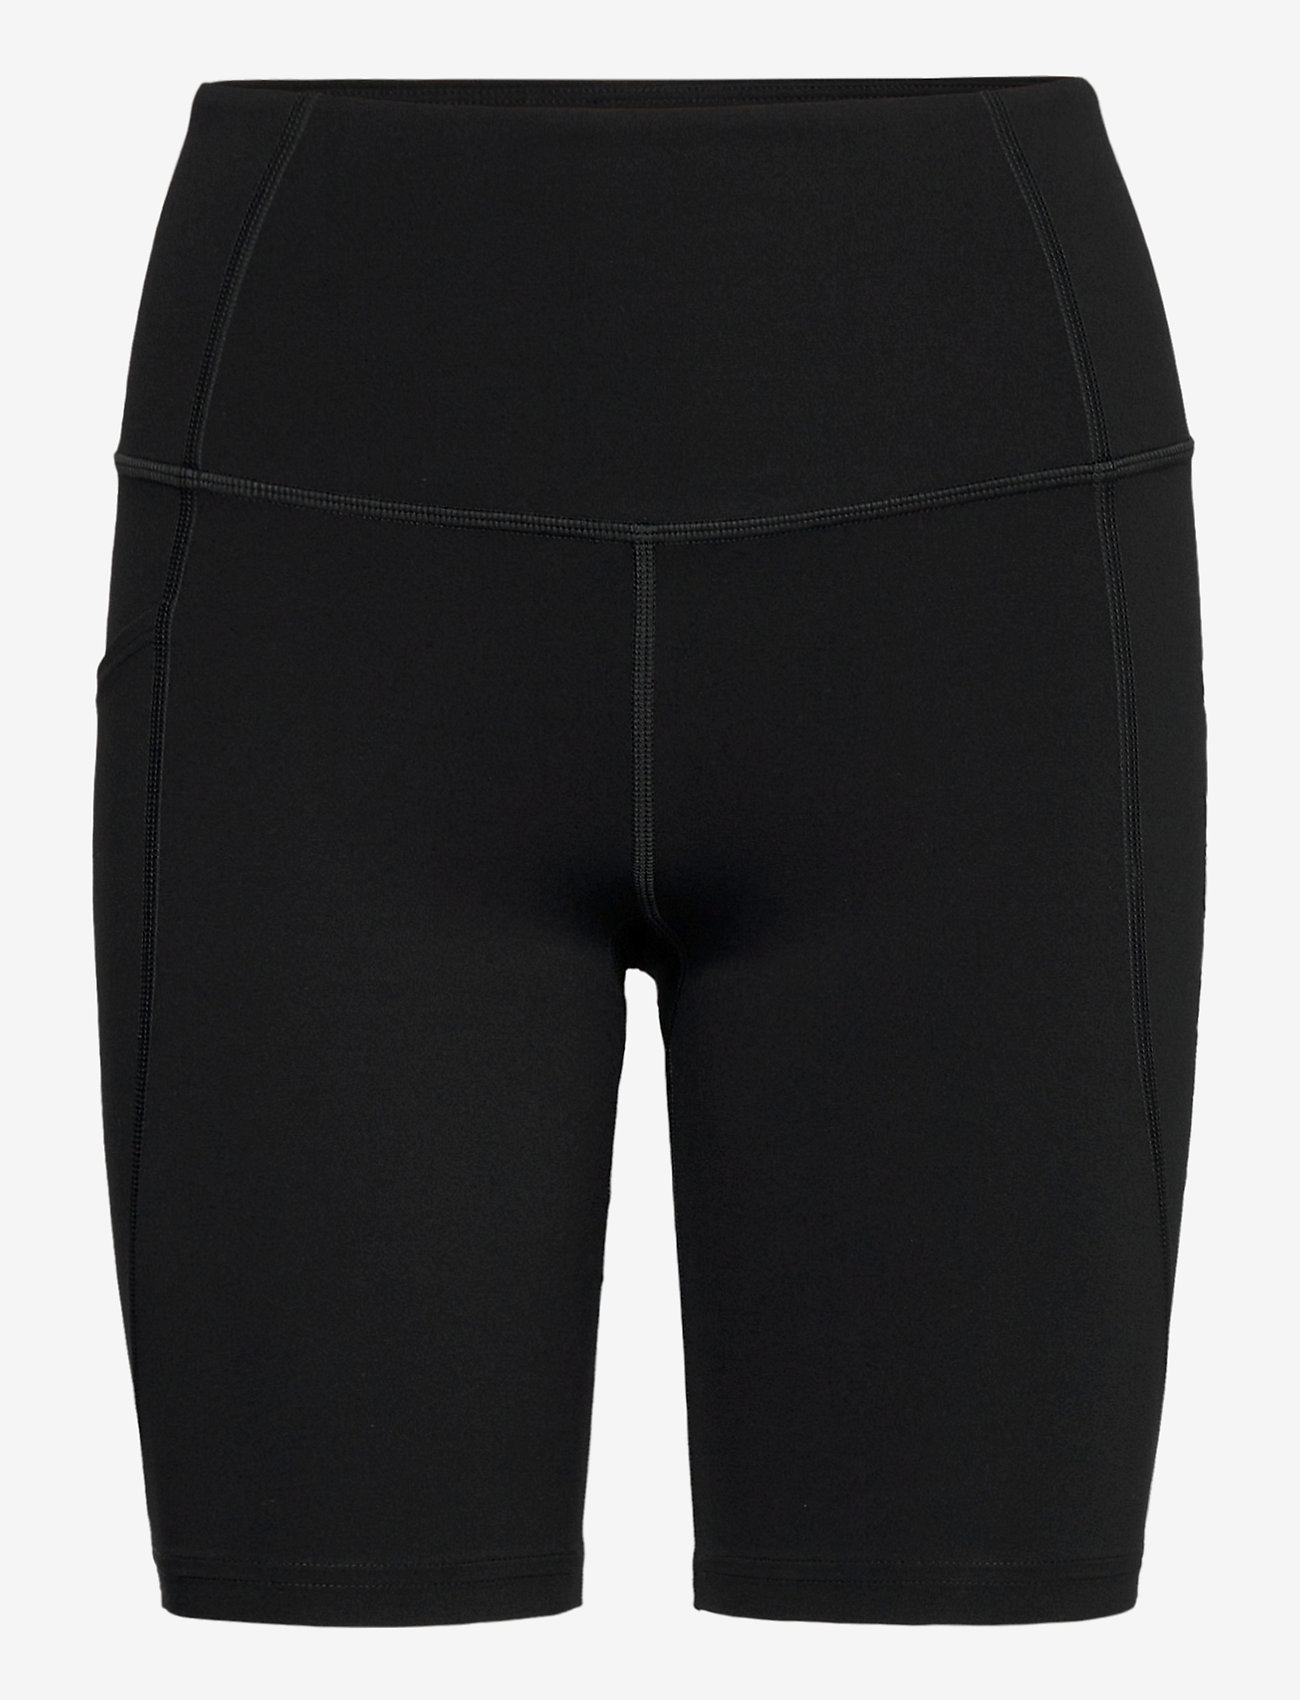 2XU - FORM STASH HI-RISE BIKE SHORT - training korte broek - black/black - 0